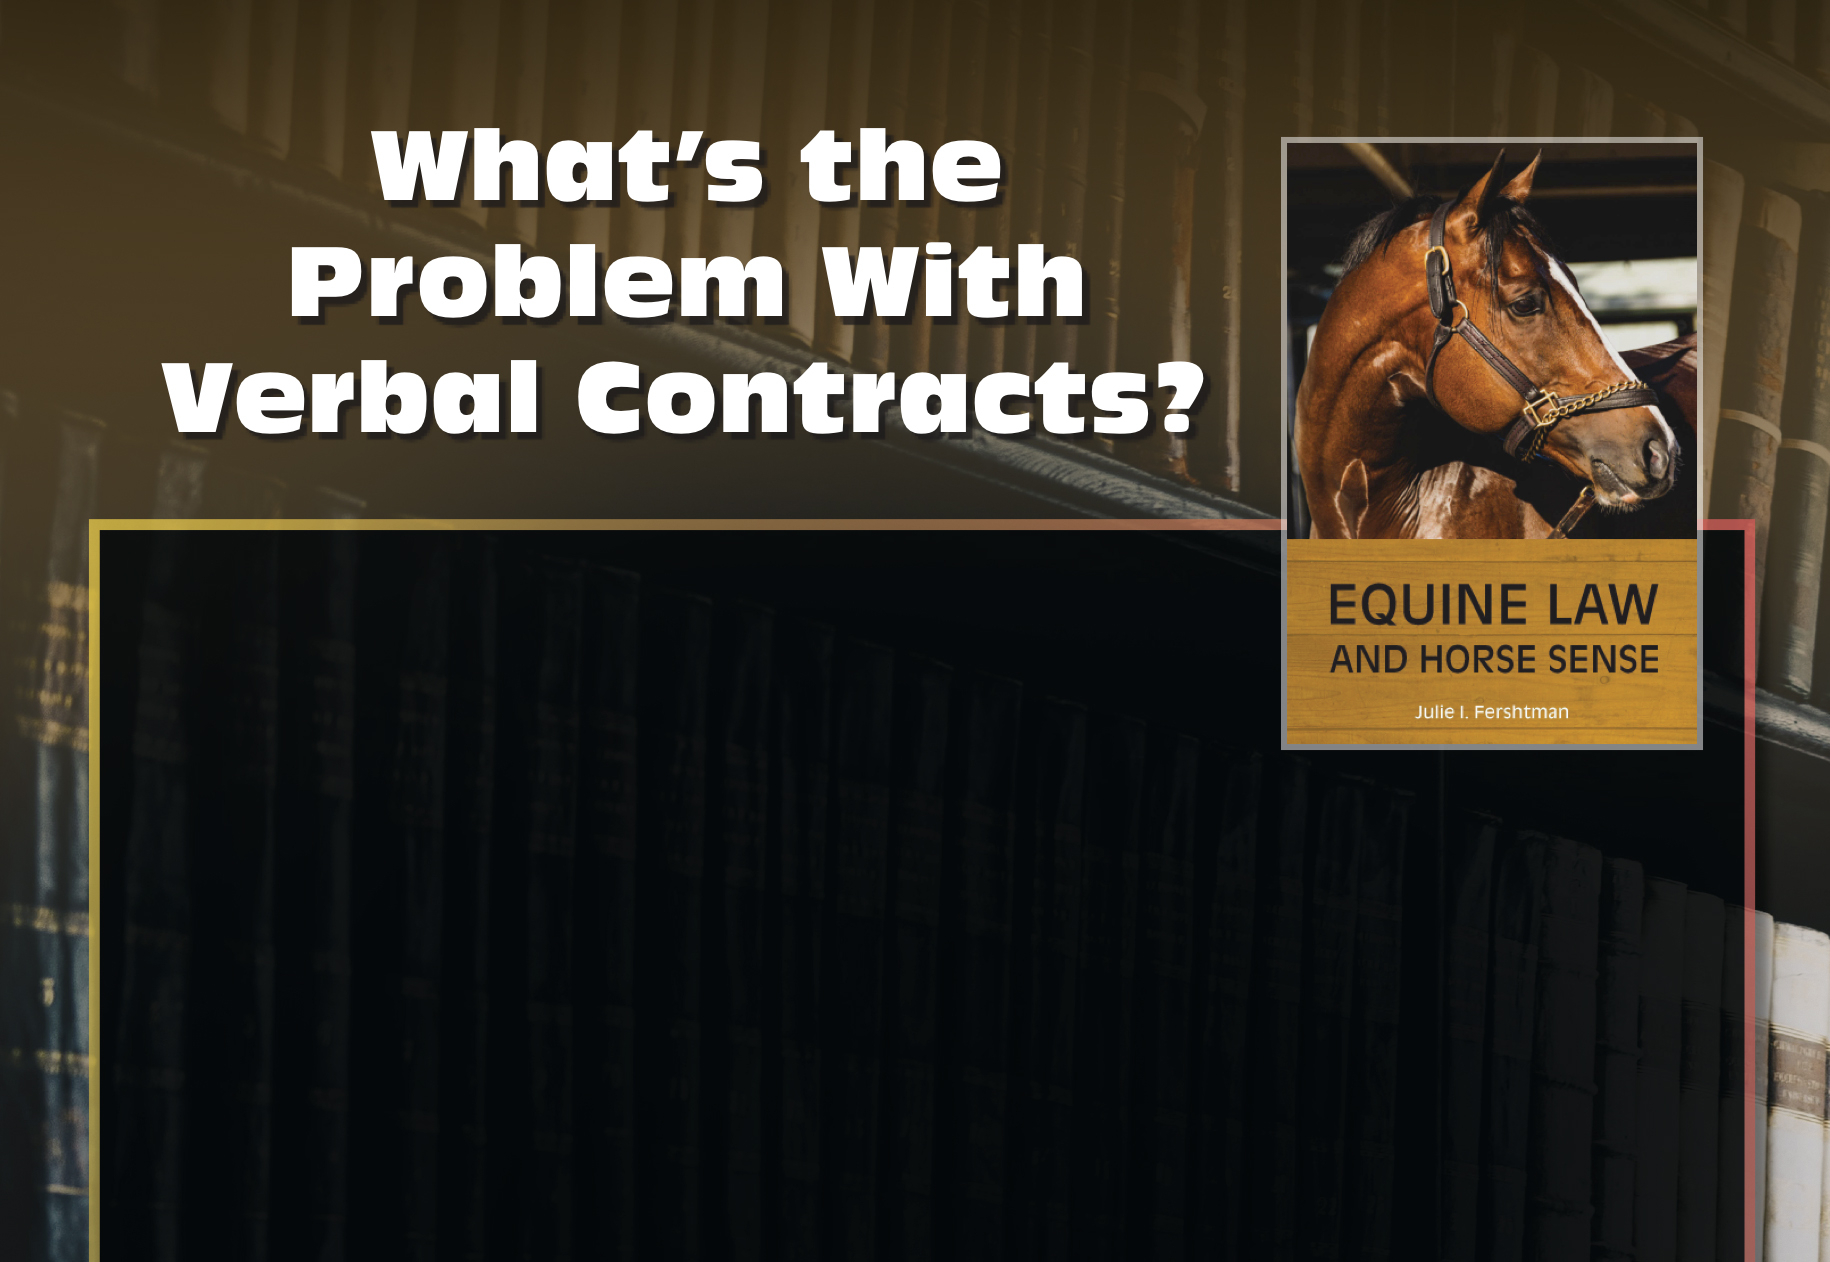 What's the Problem With Verbal Contracts?